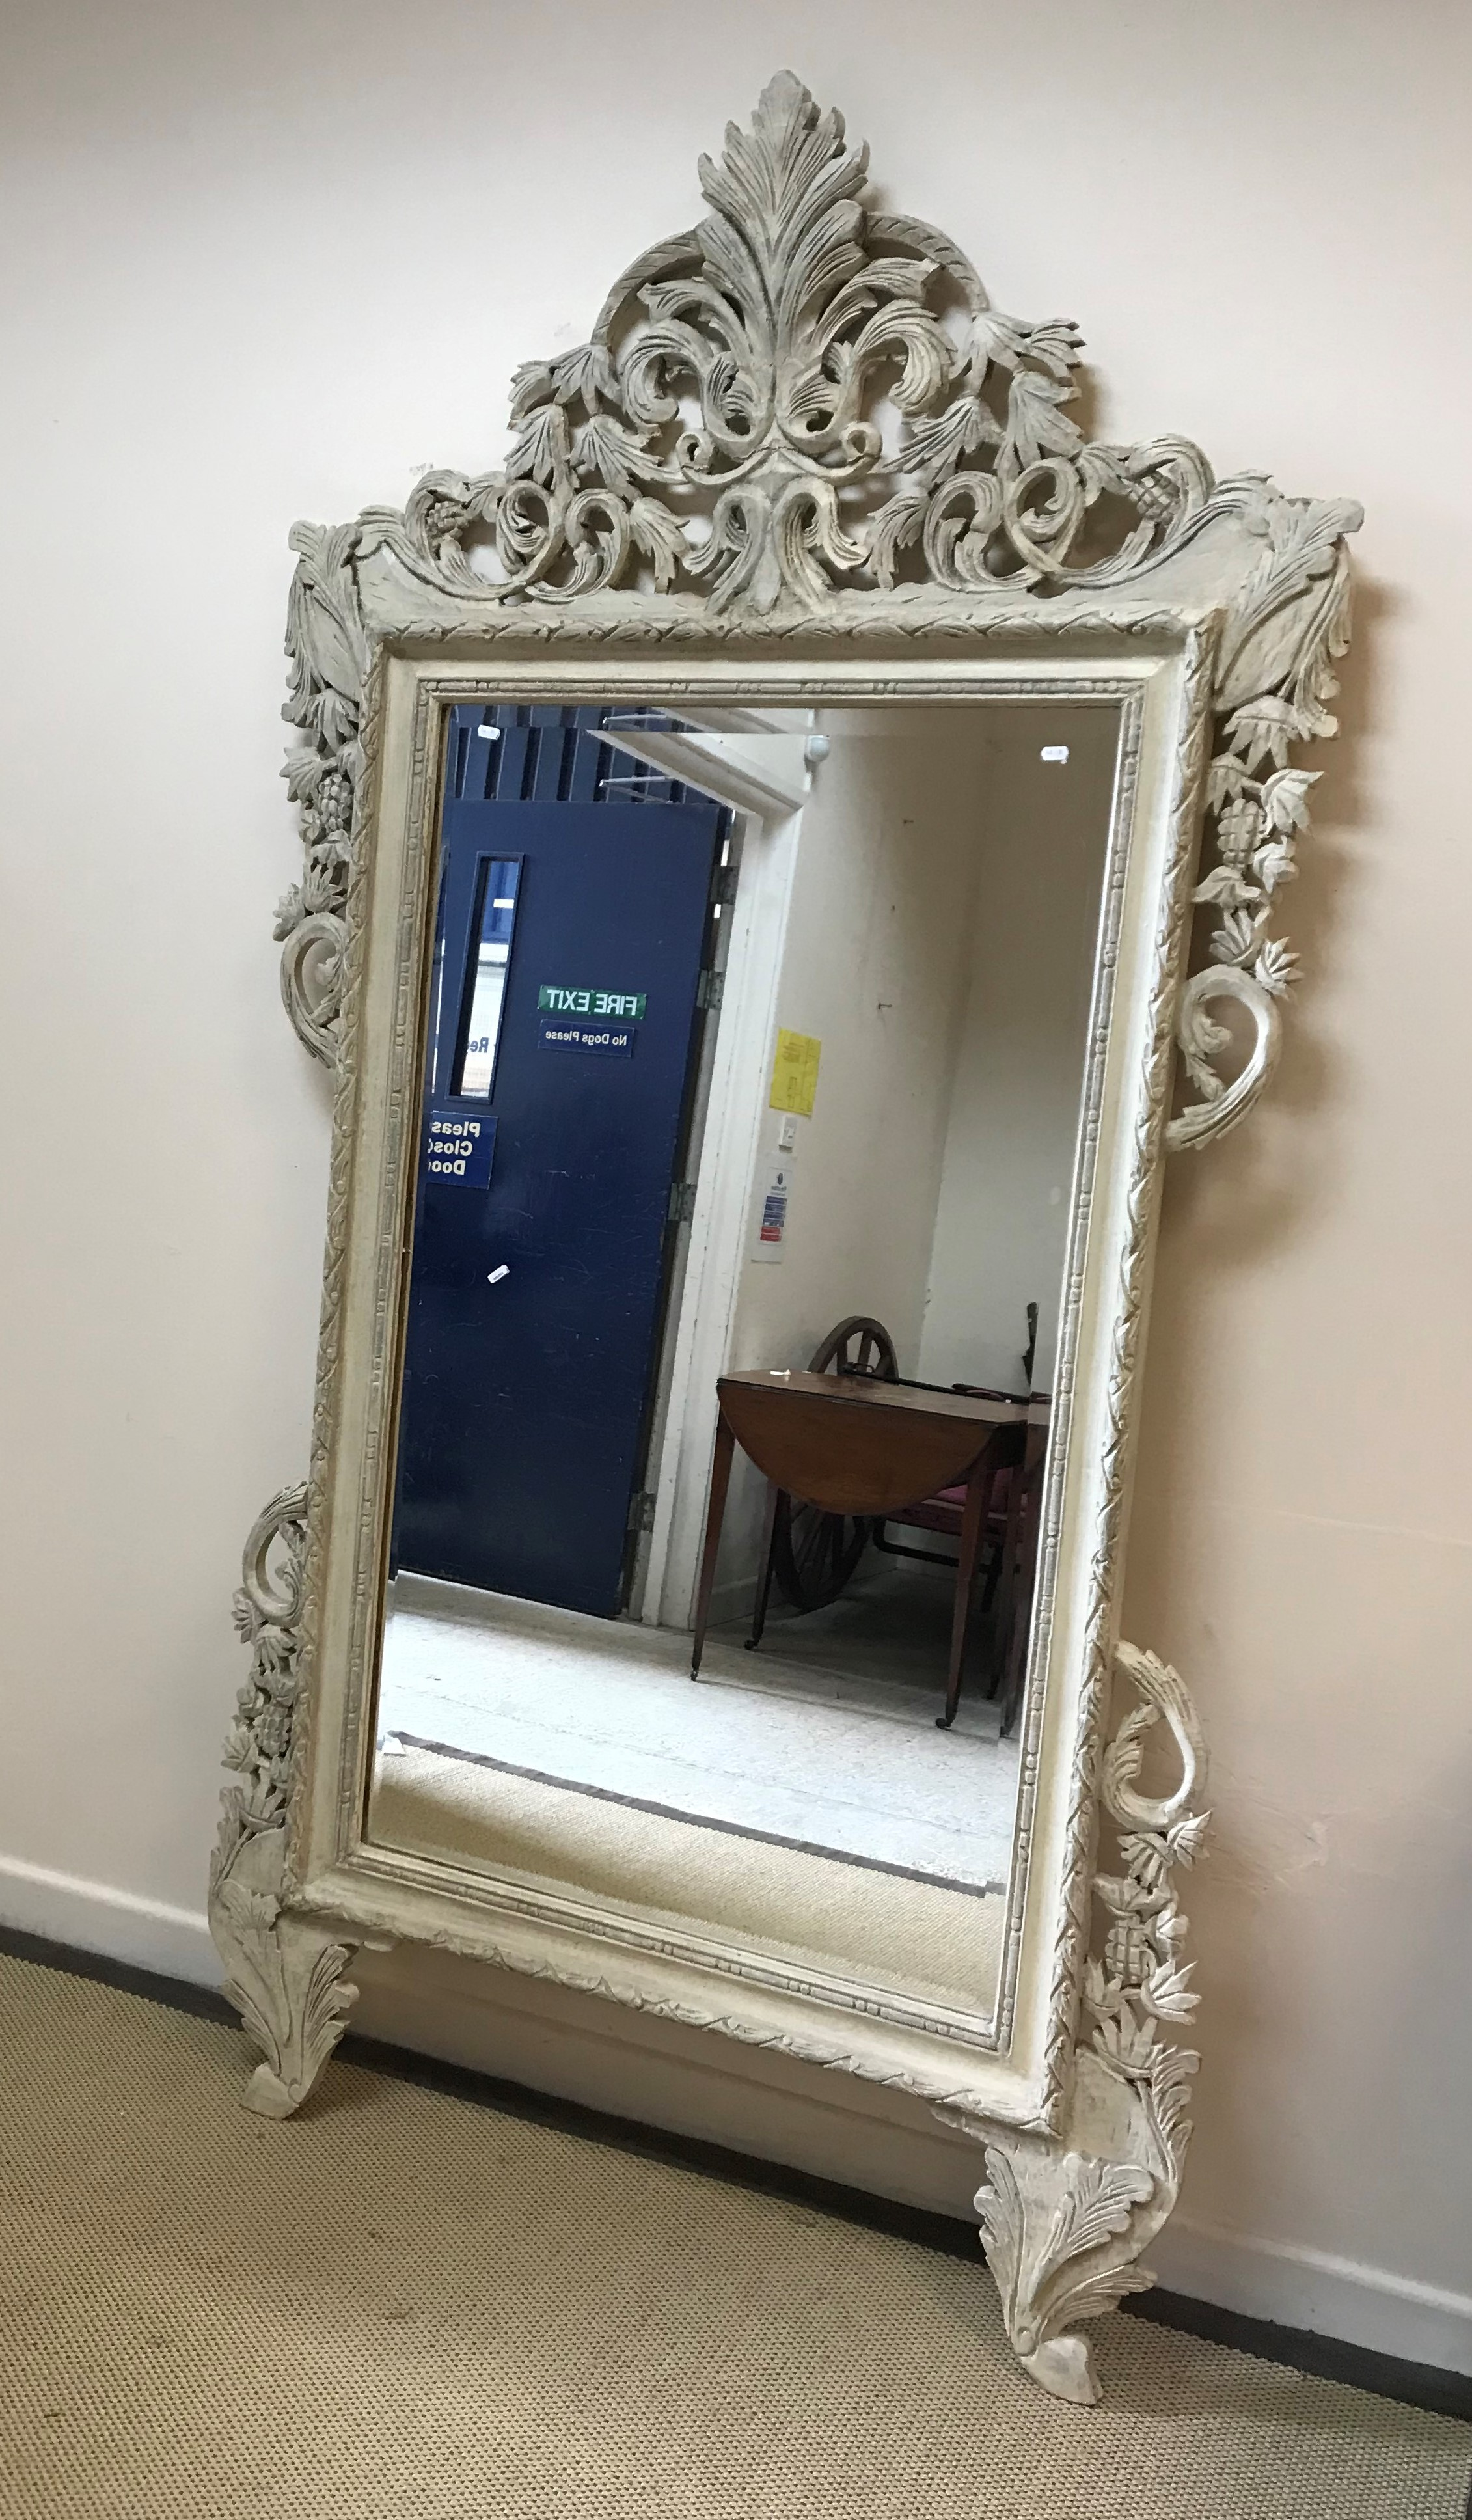 A modern painted framed wall mirror in the Continental style with rectangular bevel edged plate, 120